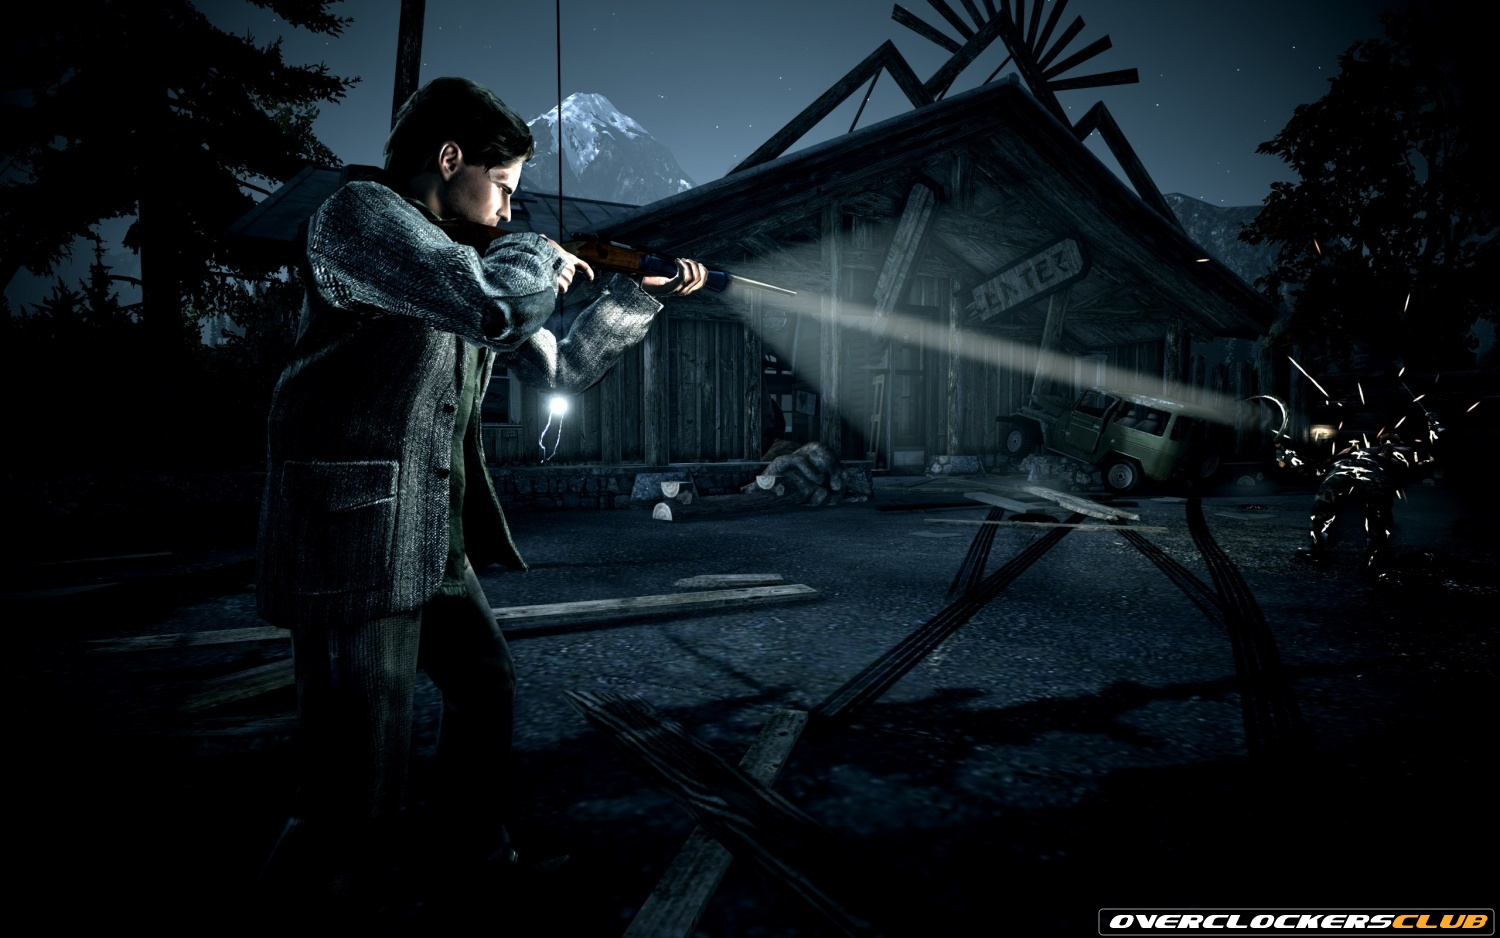 Alan Wake Lands February 16 for the PC